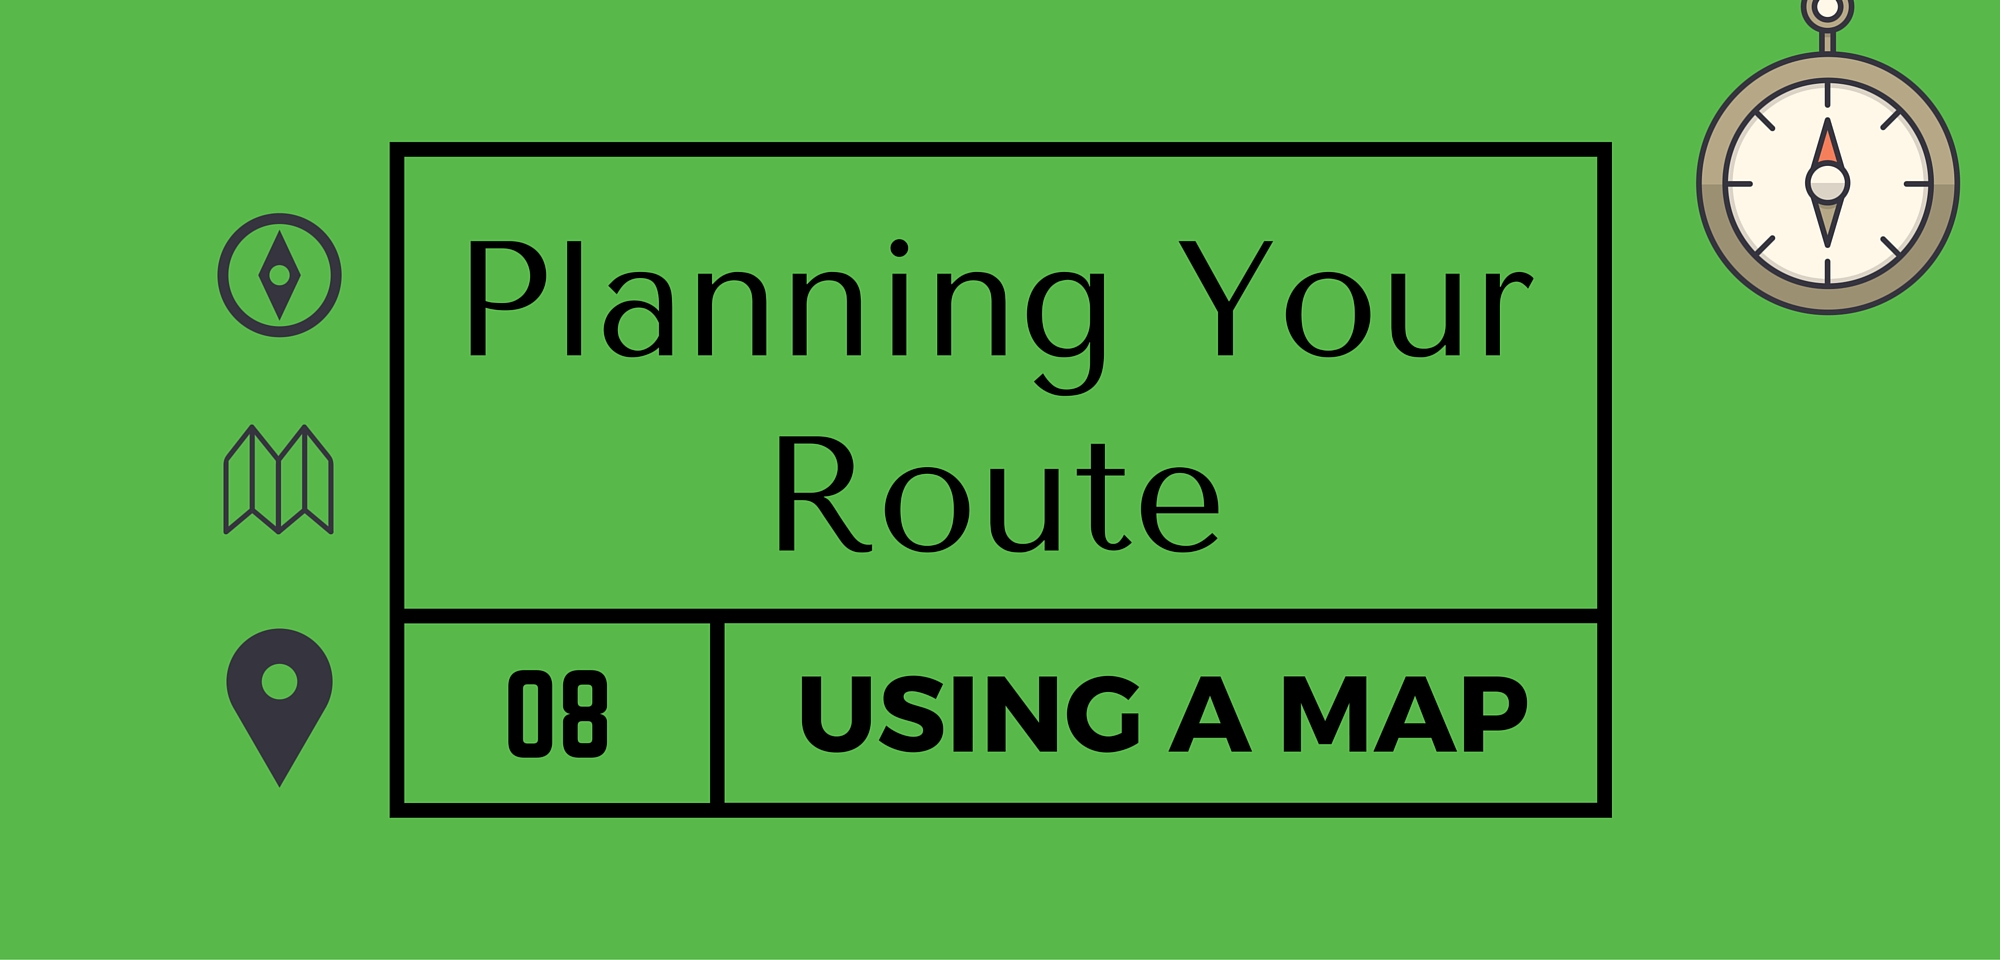 Planning Your Route